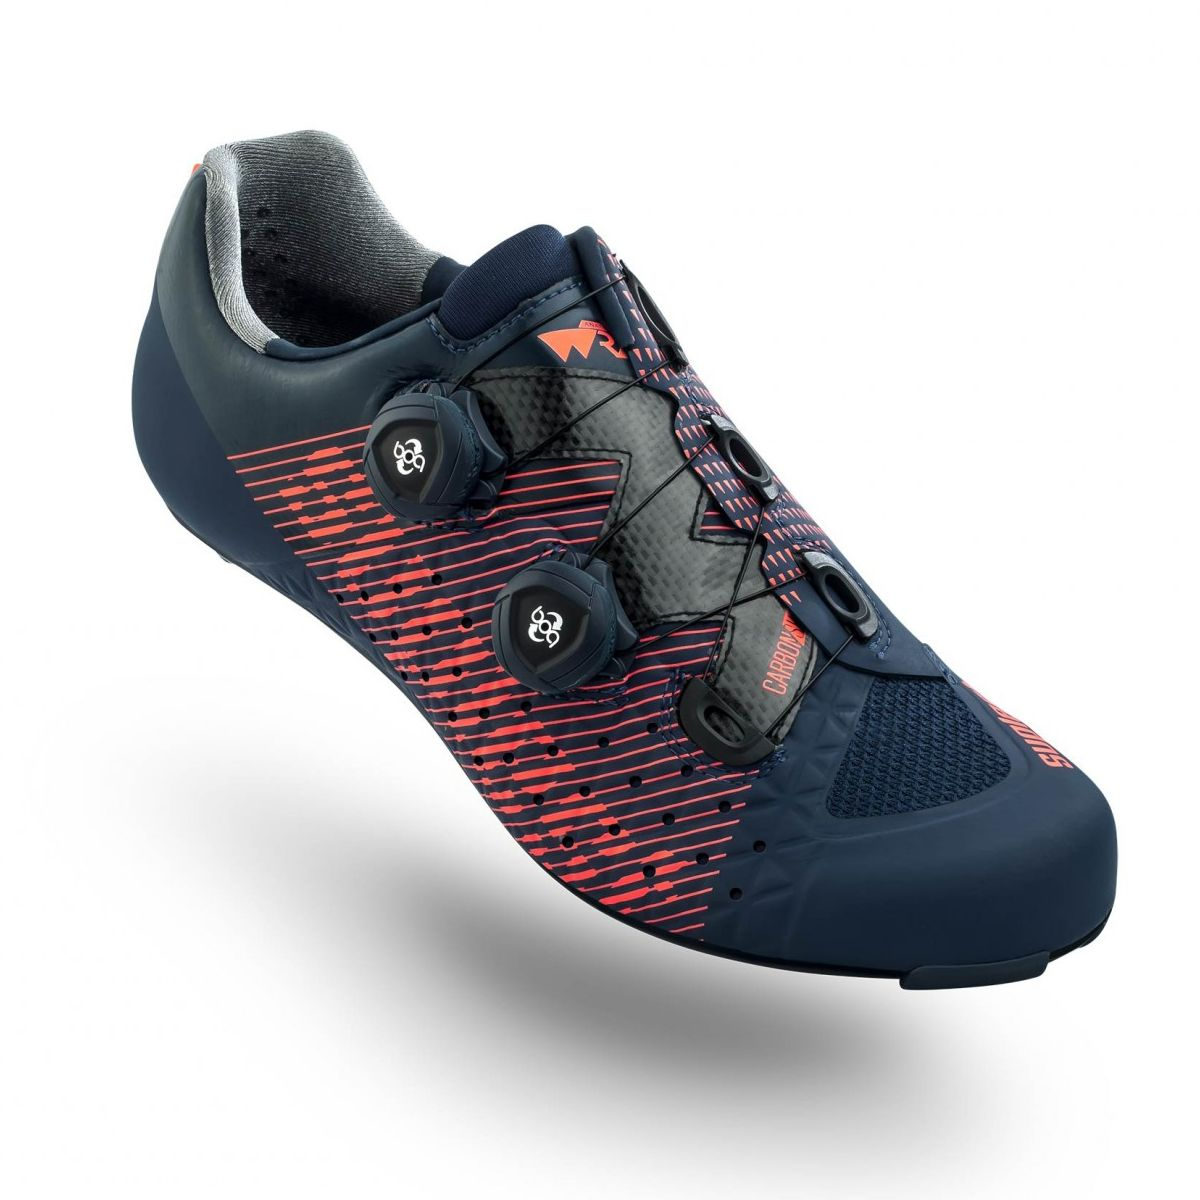 Boa Kopen Suplest Road Edge 3 Pro Road Shoes